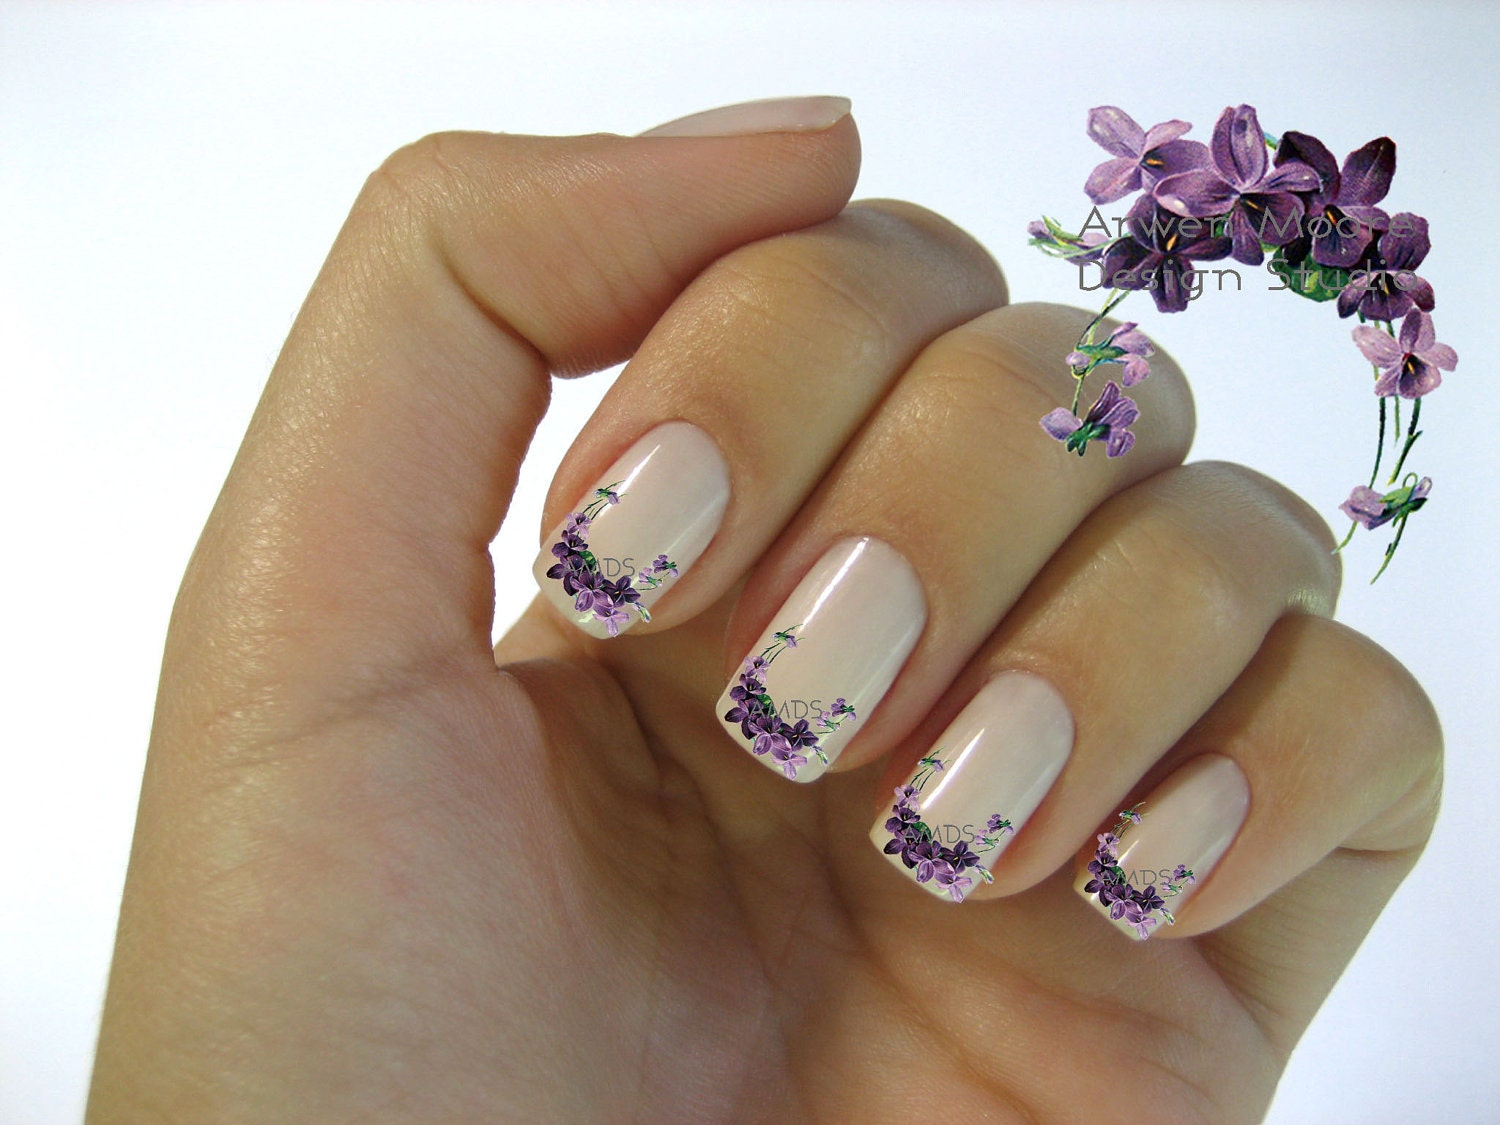 Vintage nail designs graham reid nail art vintage gallery nail art and nail design ideas vintage nail designs graham reid vintage prinsesfo Image collections